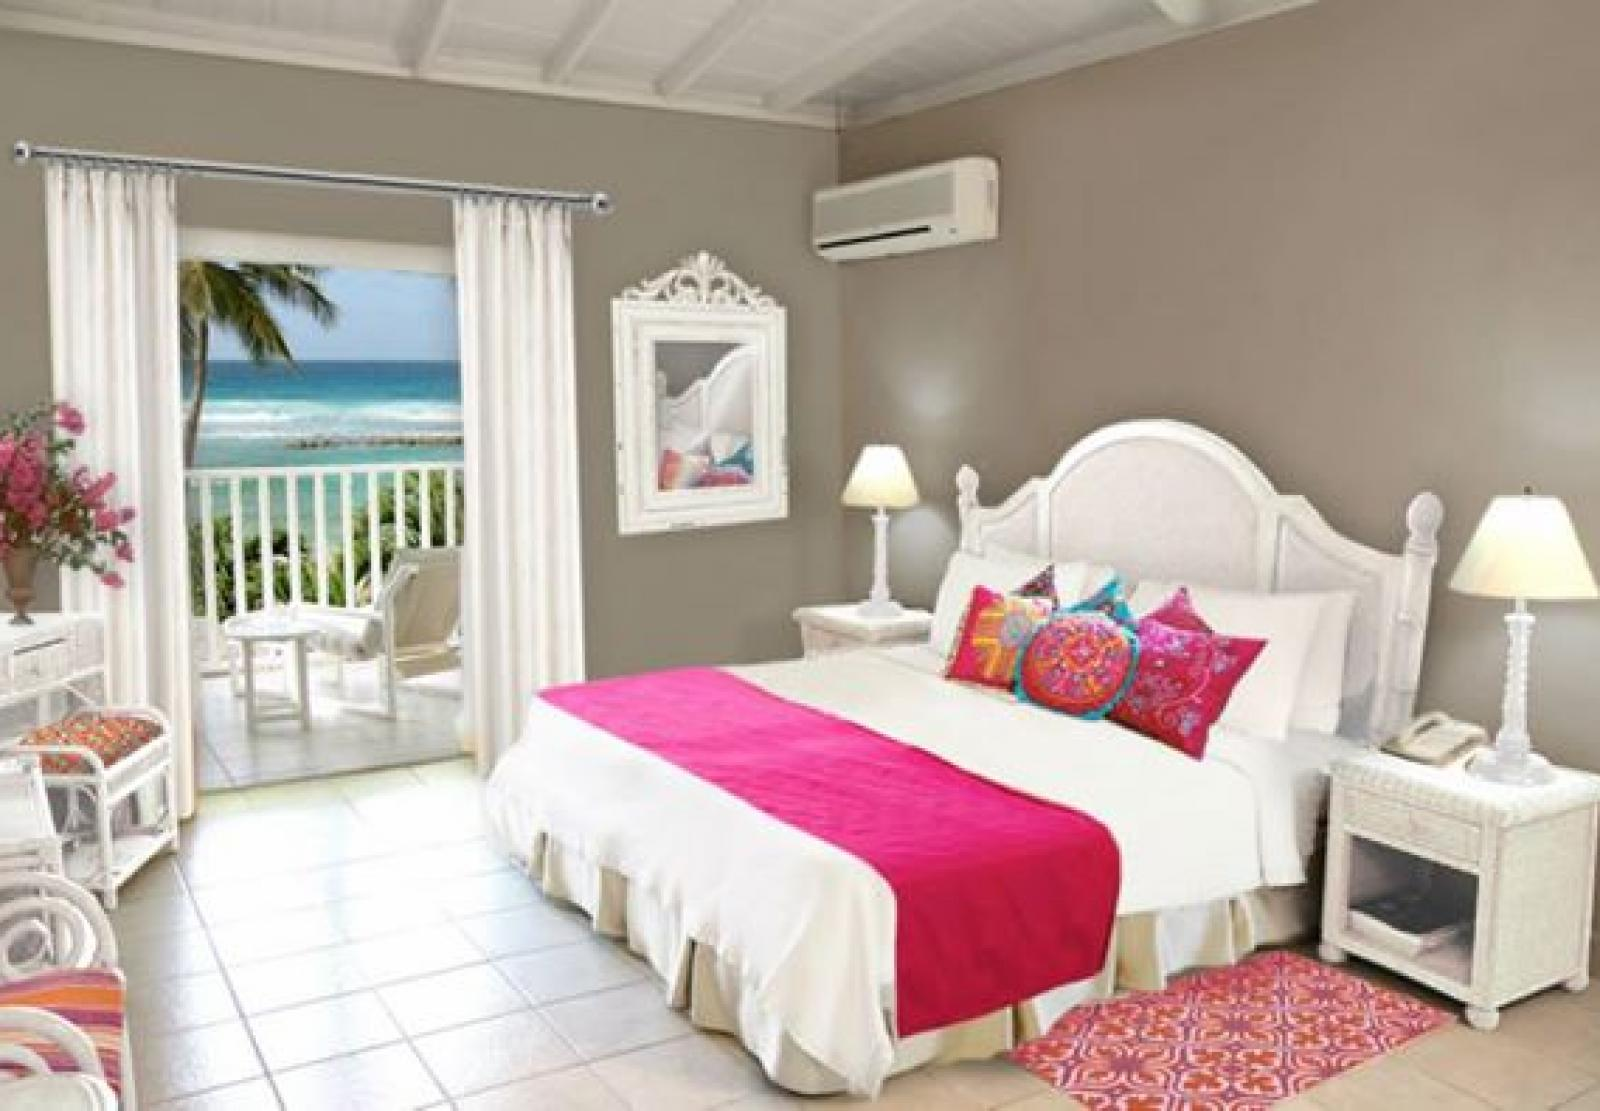 Sugar bay bedroom